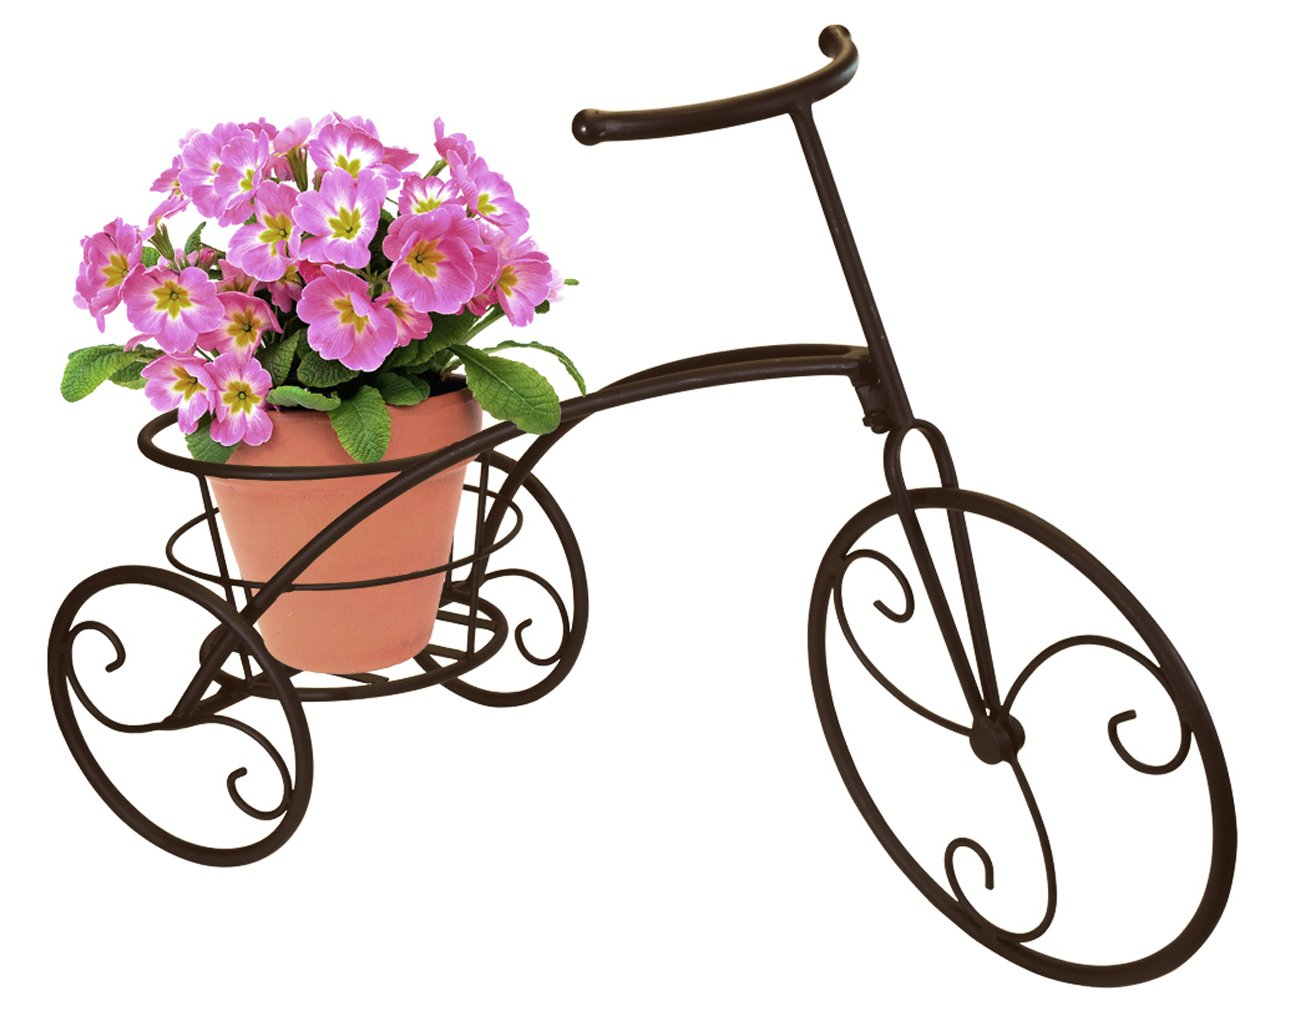 Sorbus Tricycle Plant Stand - Flower Pot Cart Holder - Ideal for Home, Garden, Patio - Great Gift for Plant Lovers, Housewarming, Mother's Day - Parisian Style (Single Pot, Bronze) by Sorbus (Image #1)